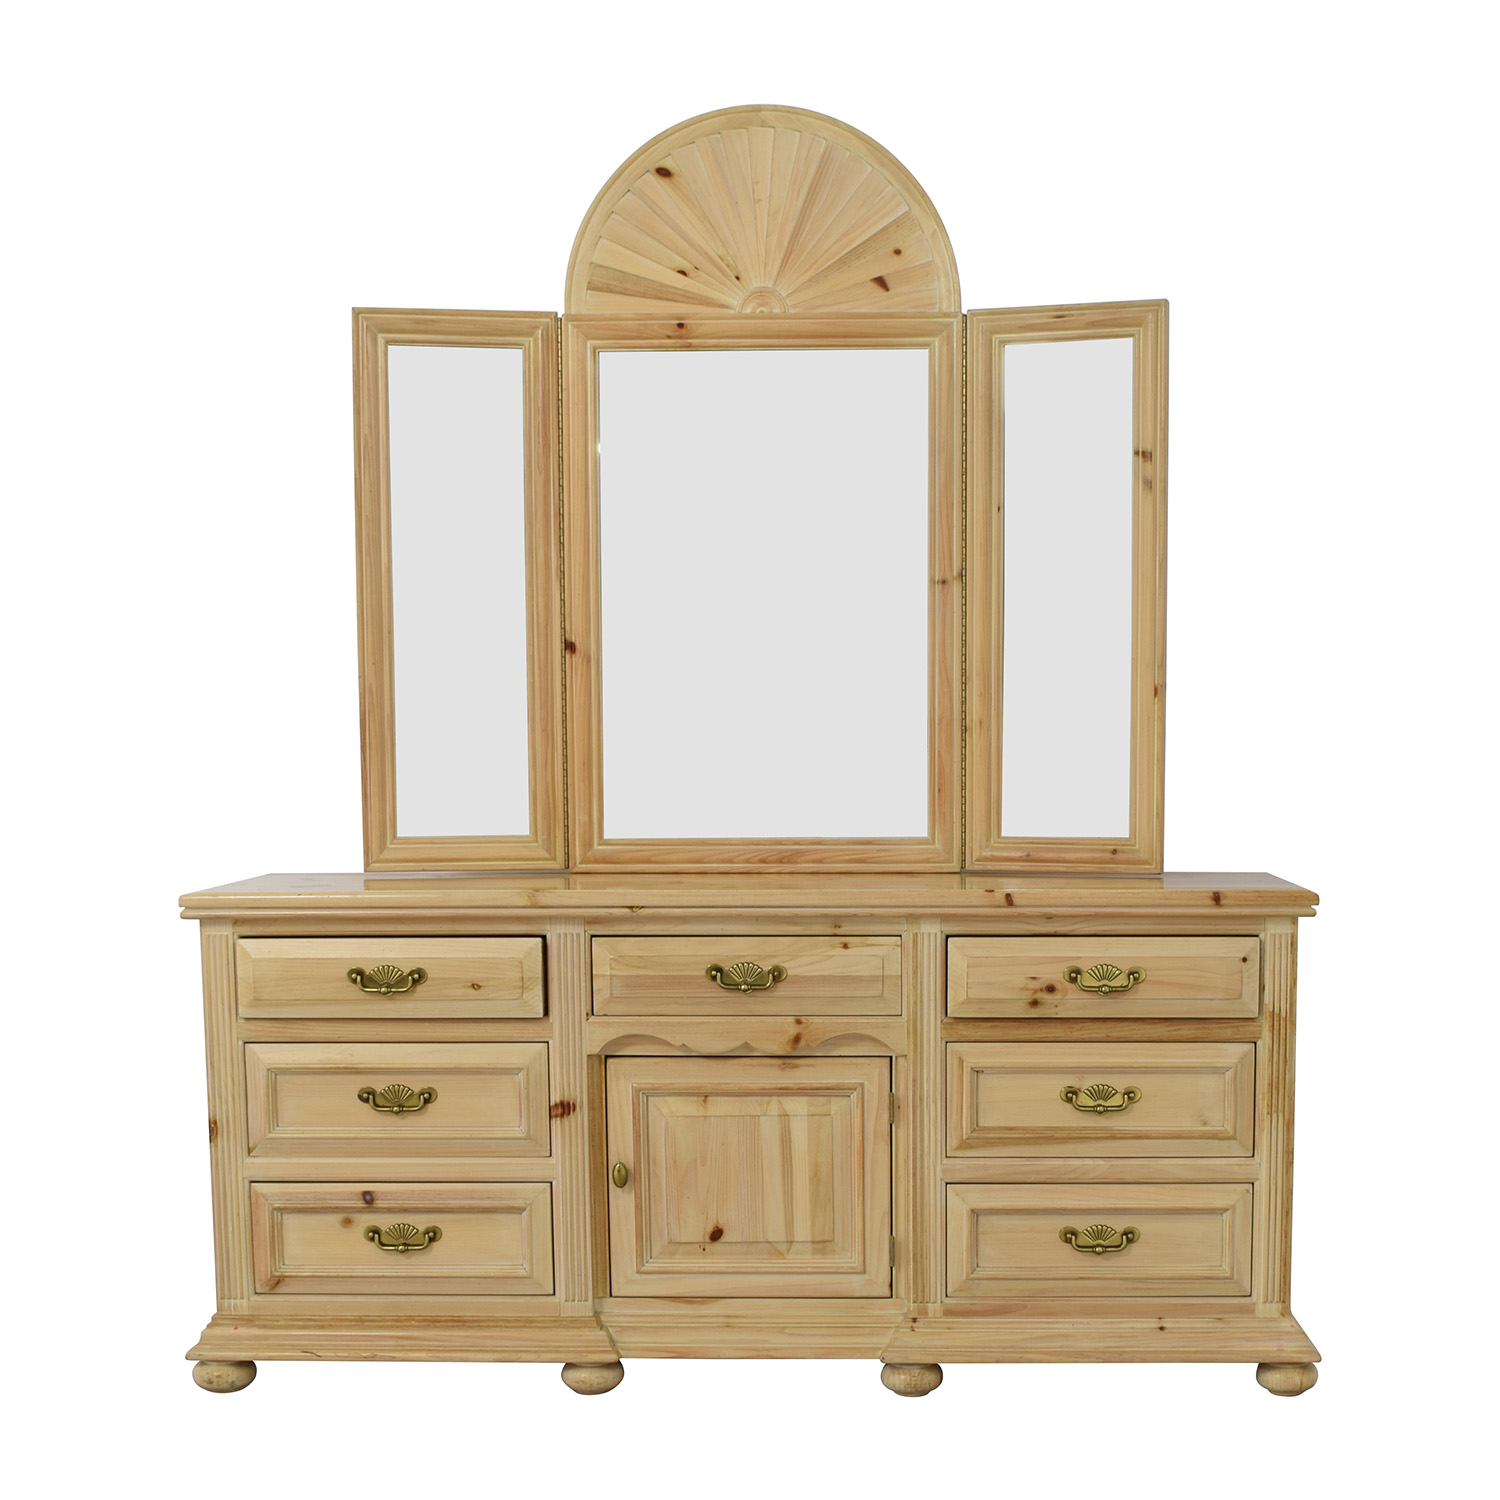 dresser with hutch mirror black link taylor natural sevendrawer dresser with mirror used 85 off regazzi morigeaulepine sever drawer and